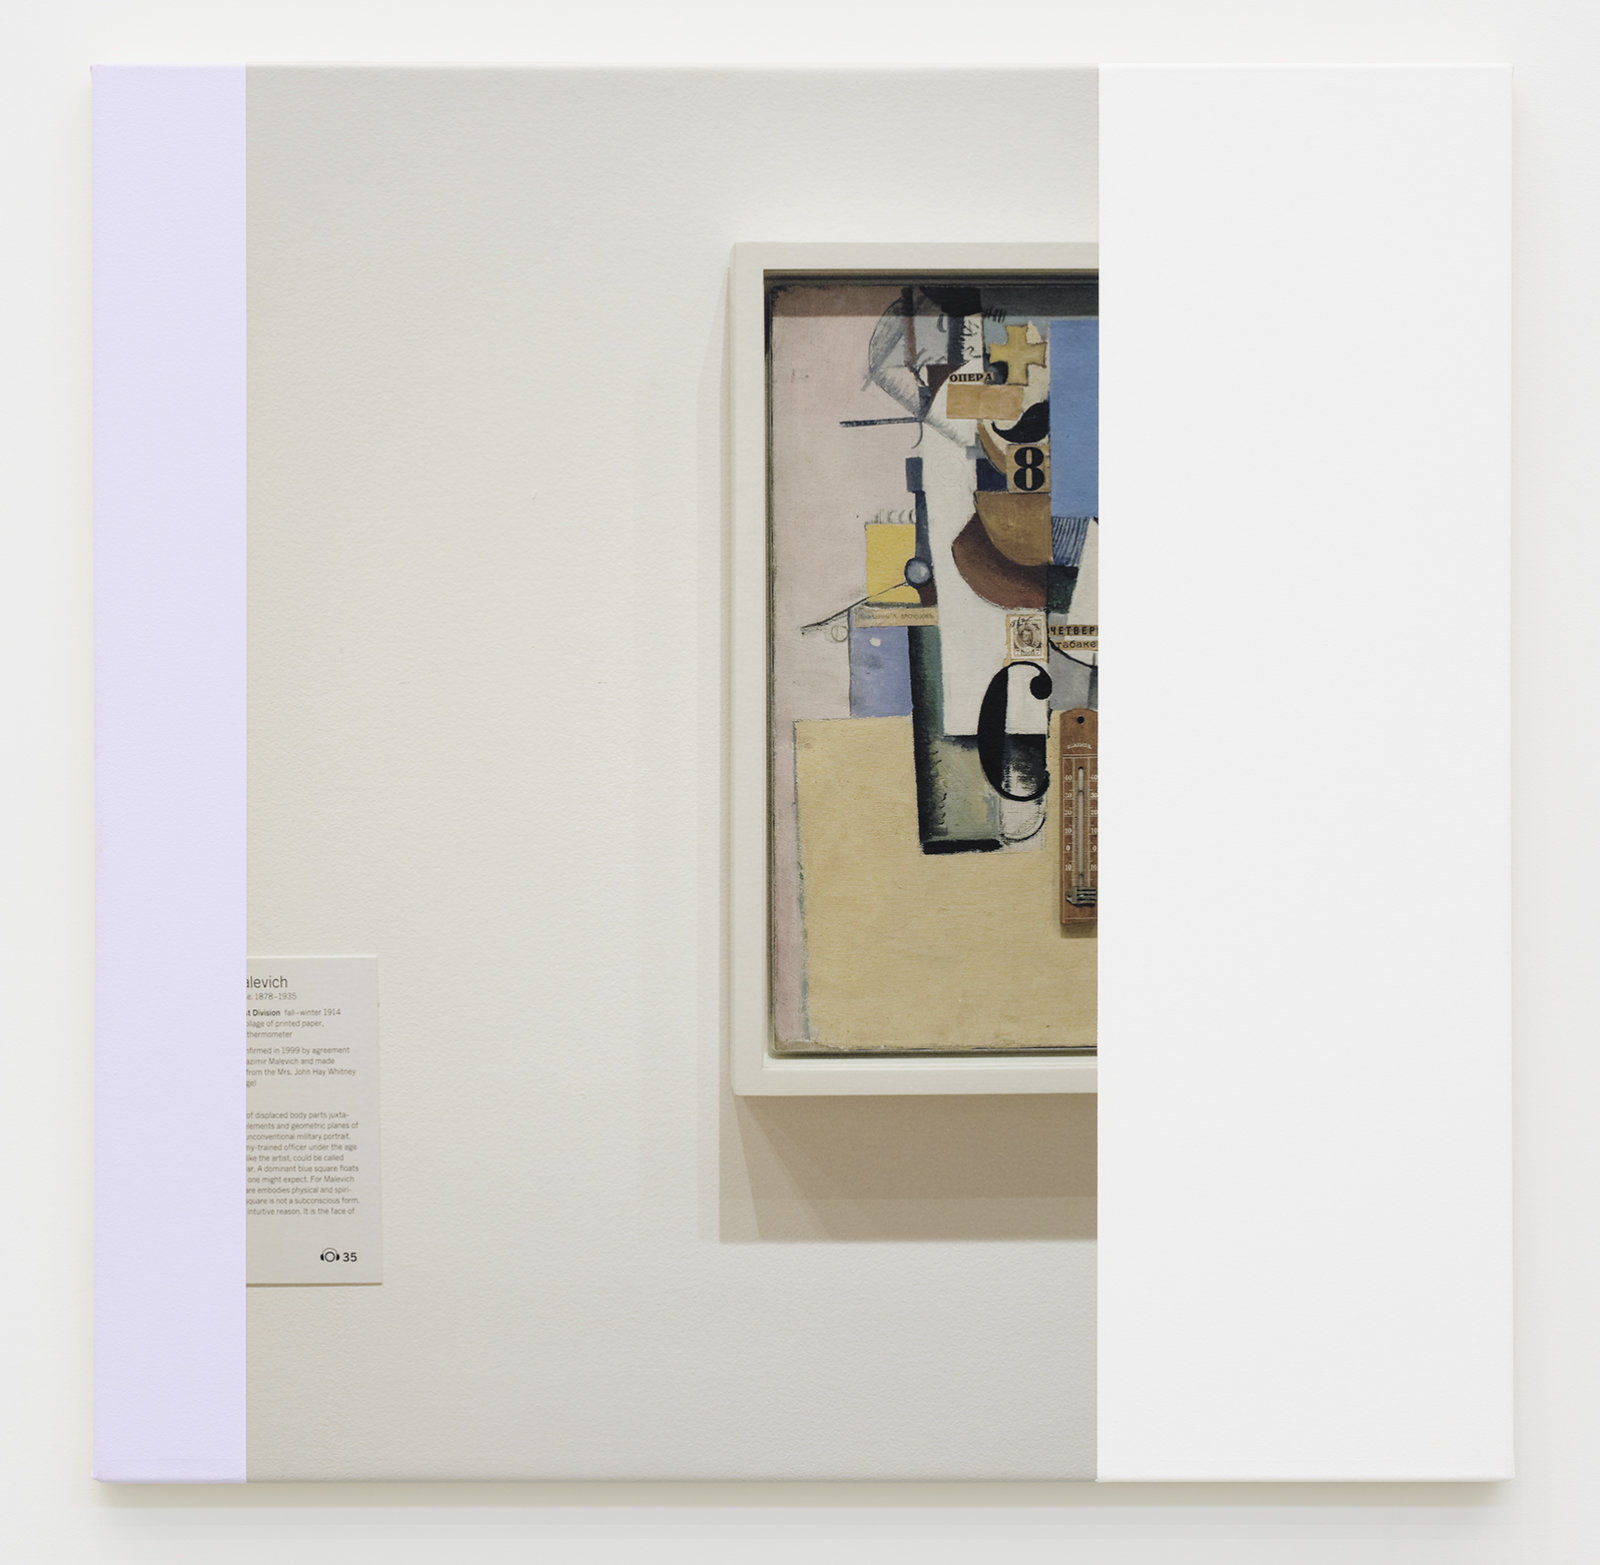 Ian Wallace, Abstract Painting (MOMA NYC) I, 2009, photolaminate with acrylic on canvas, 36 x 36 in. (91 x 91 cm) by Ian Wallace